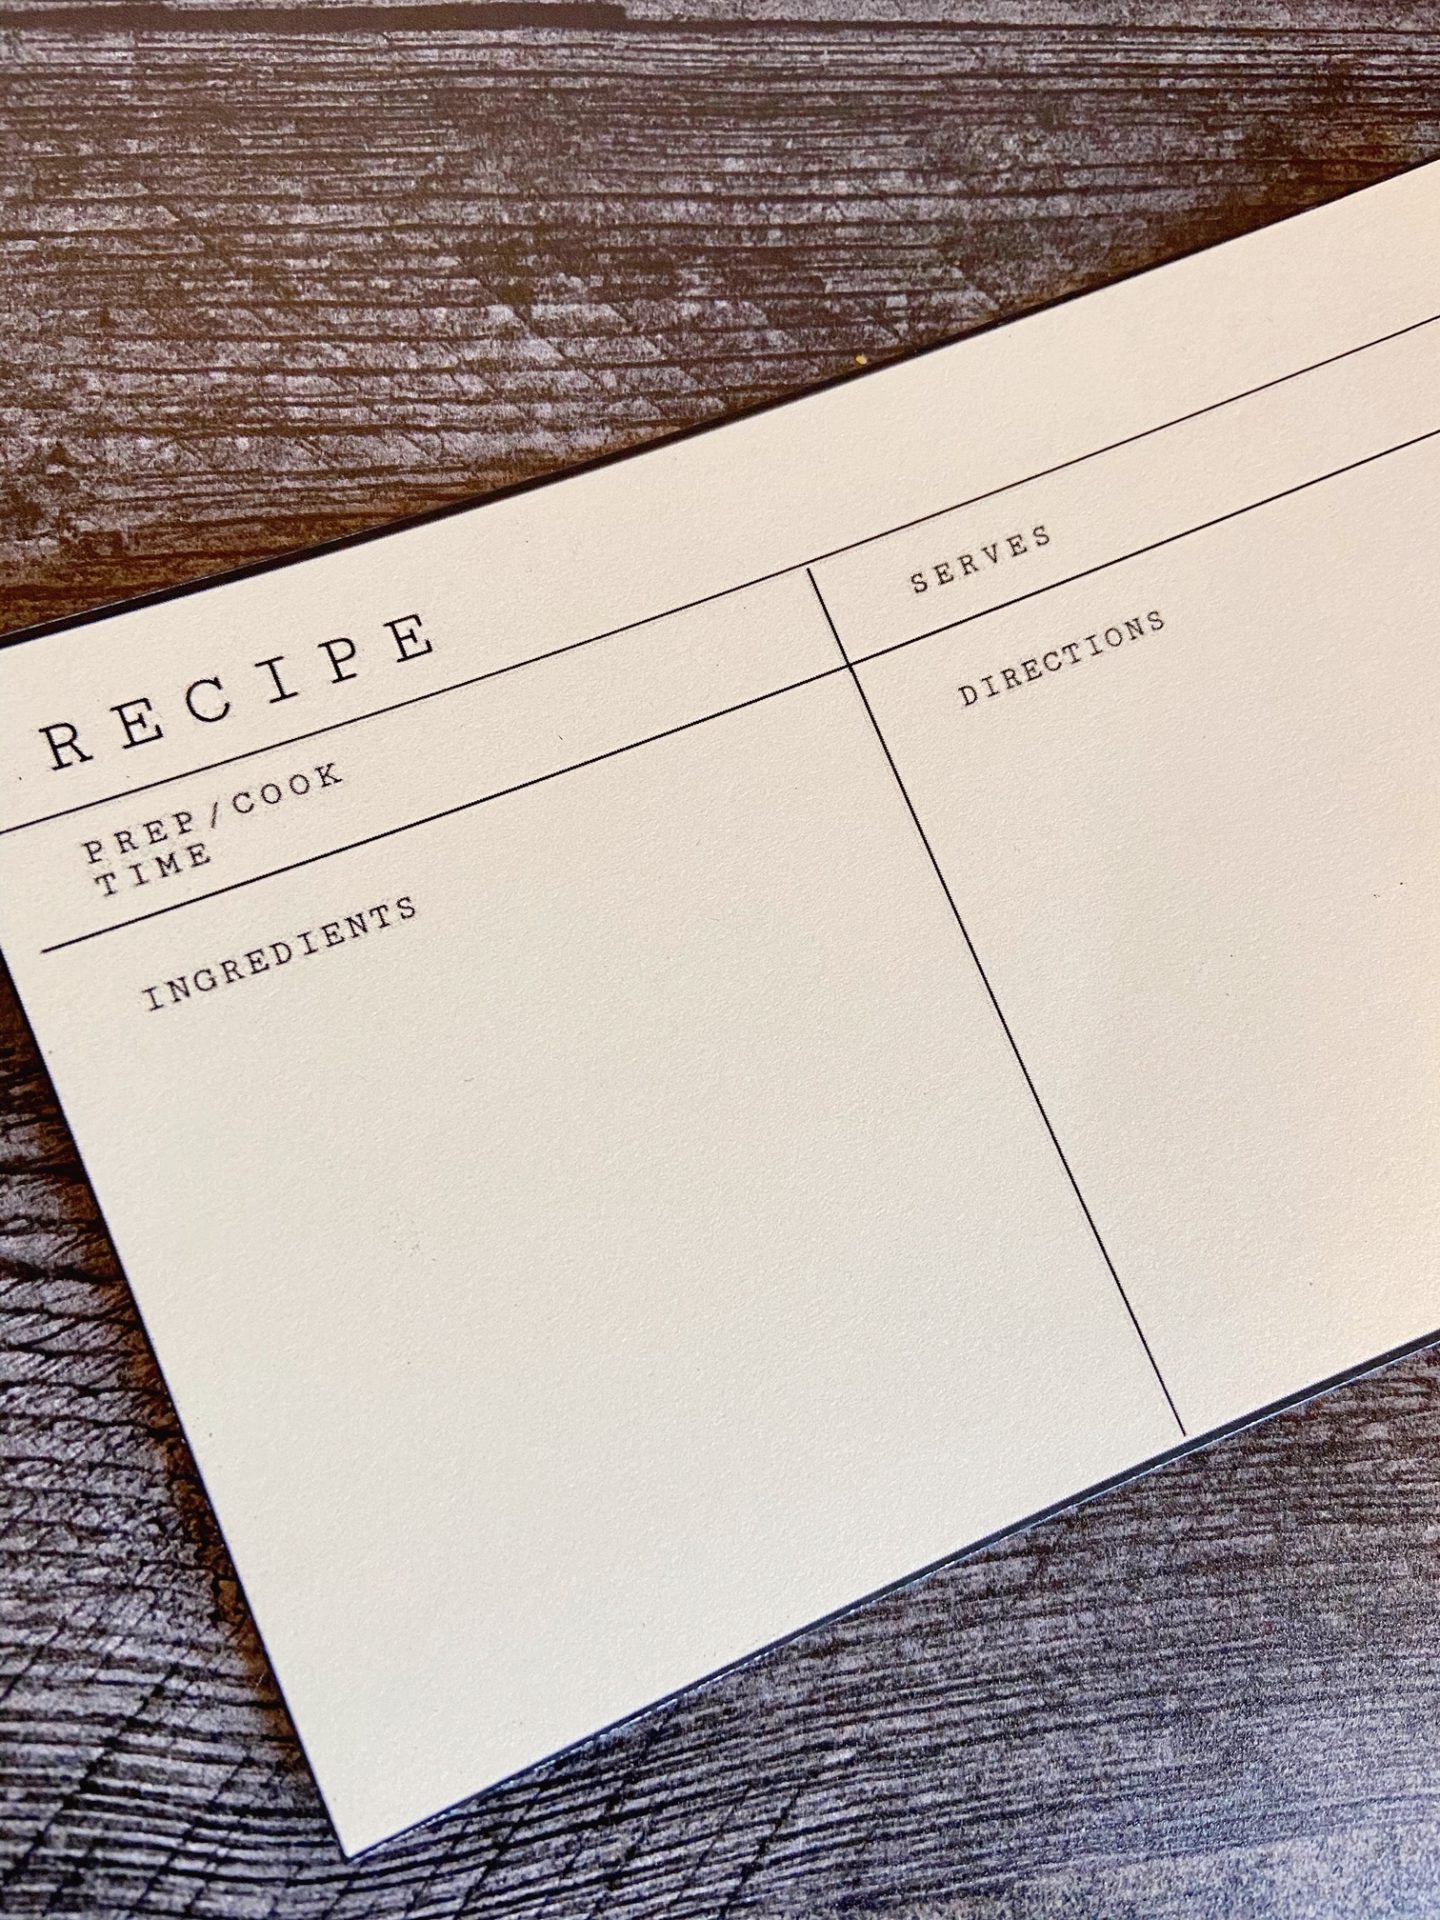 sourdough starter tags labels and blank fillable recipe card